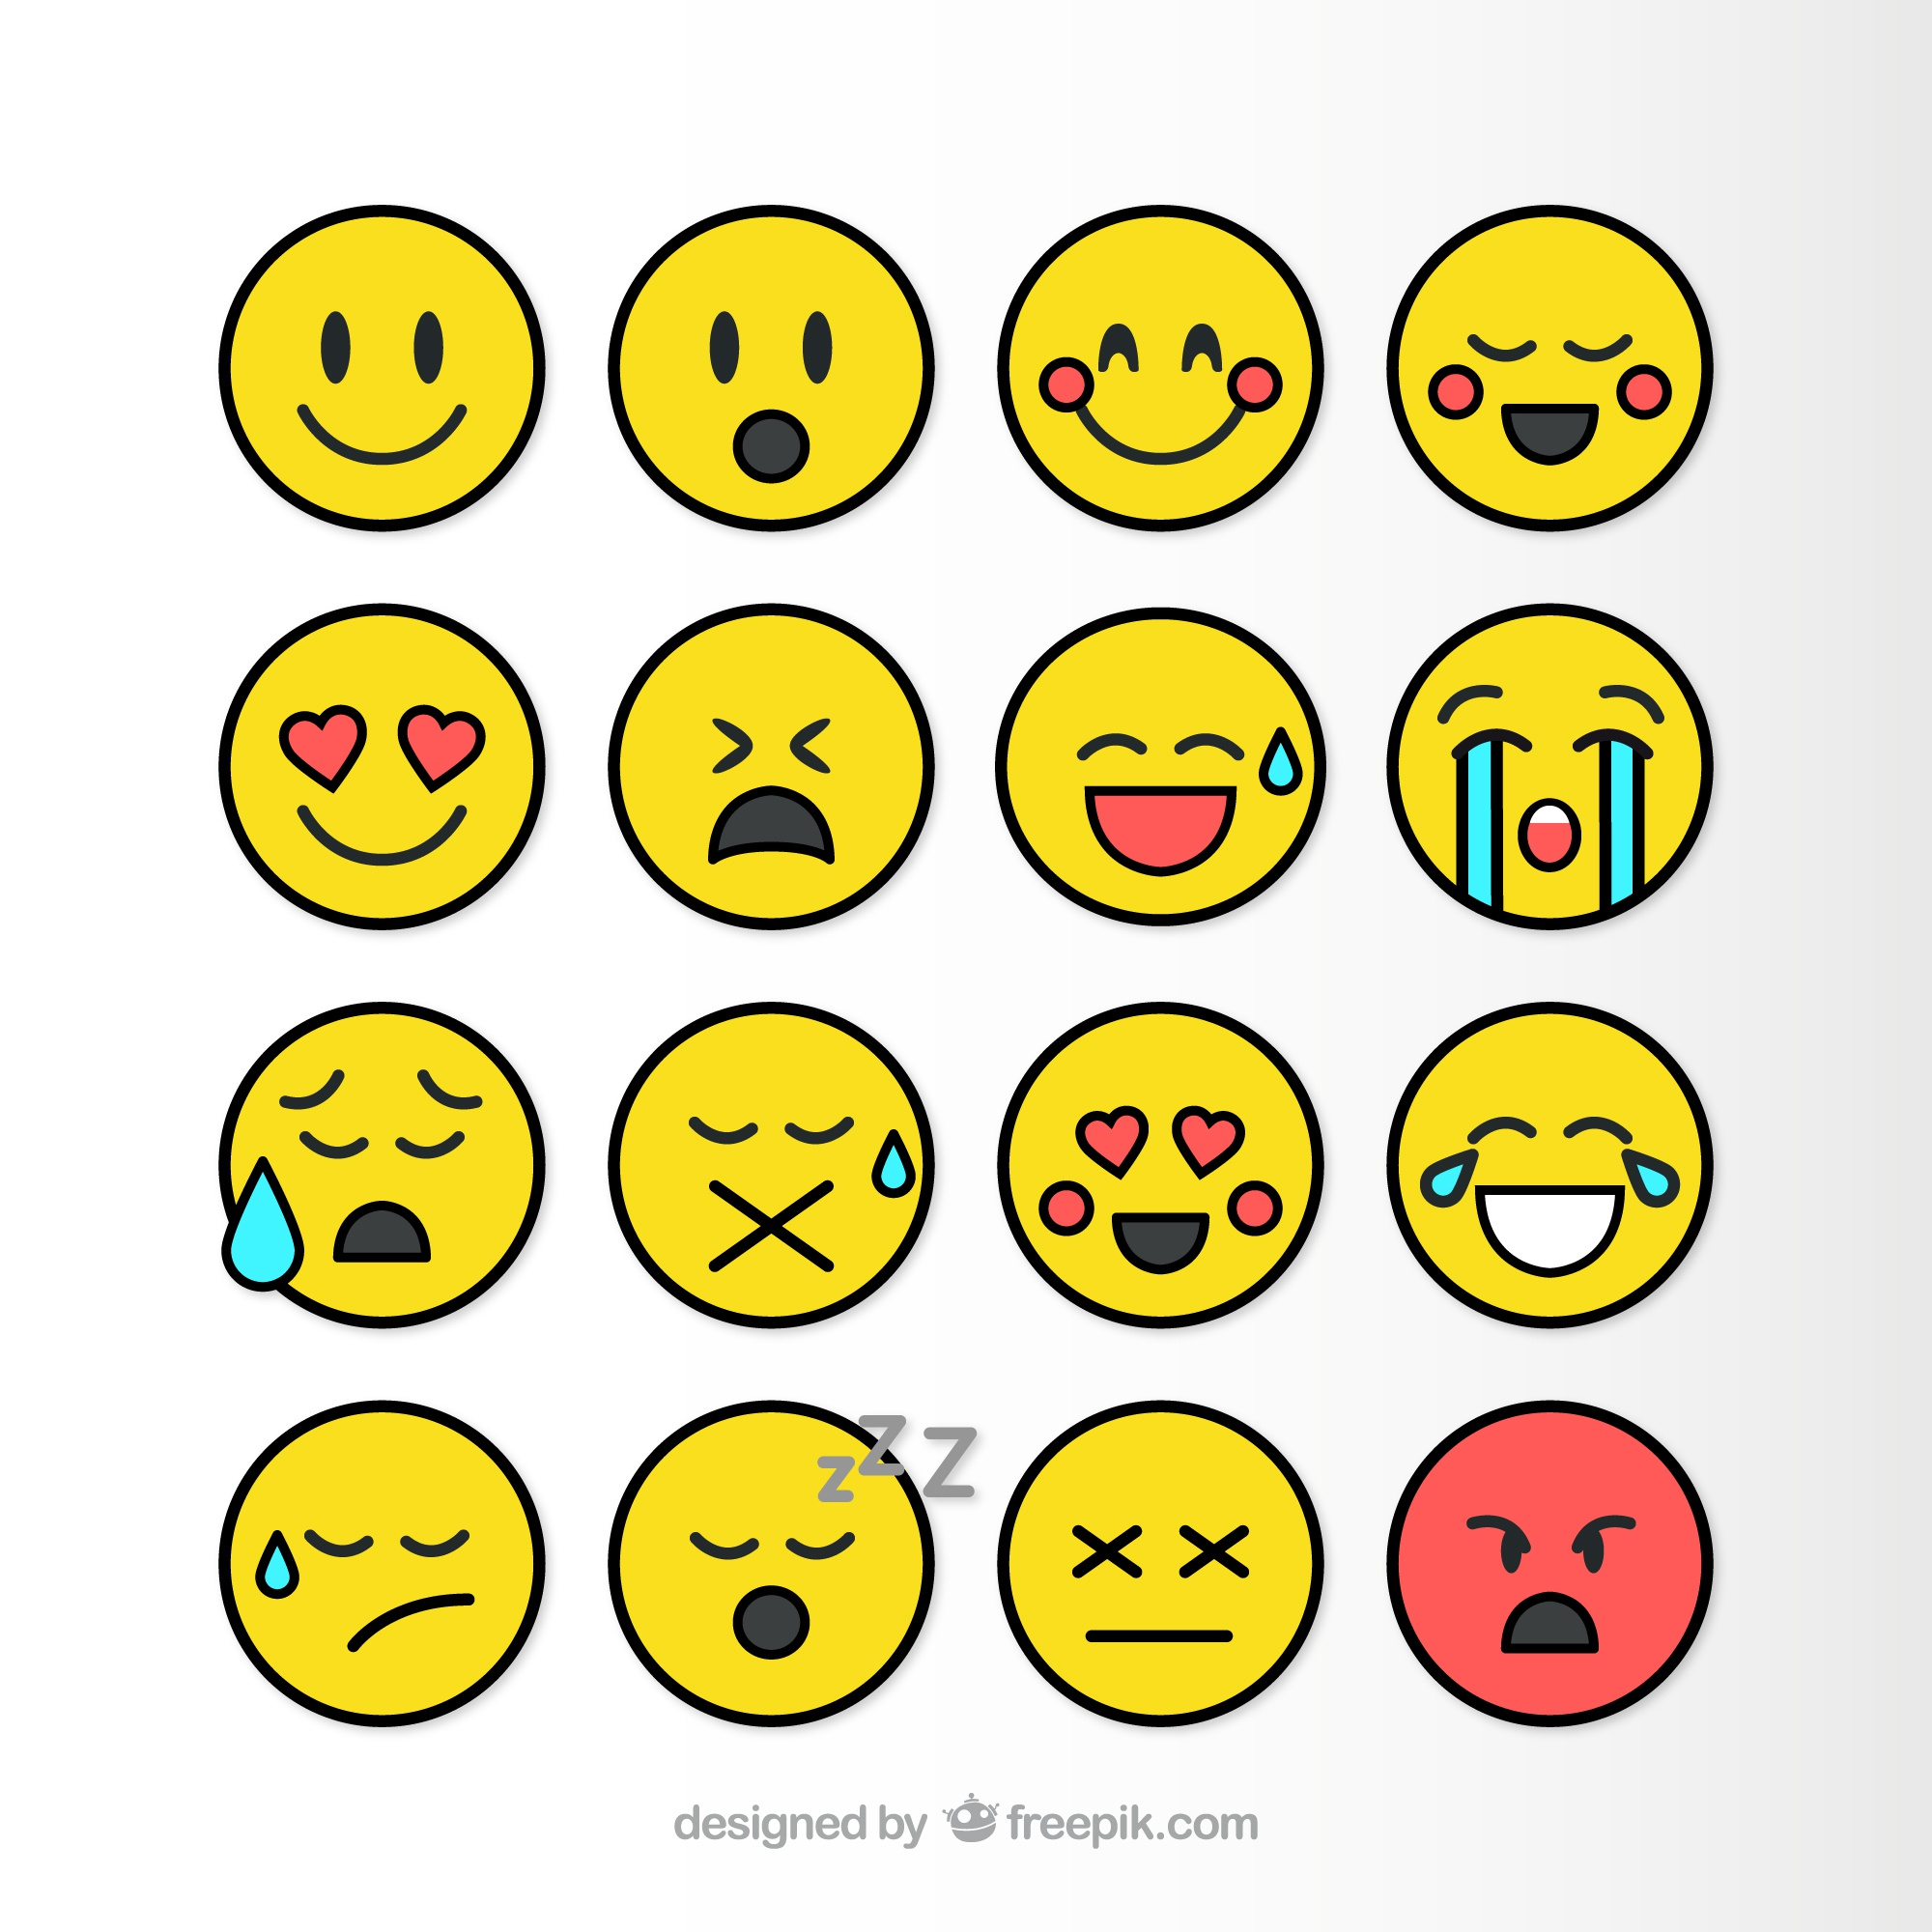 Flat smileys pack